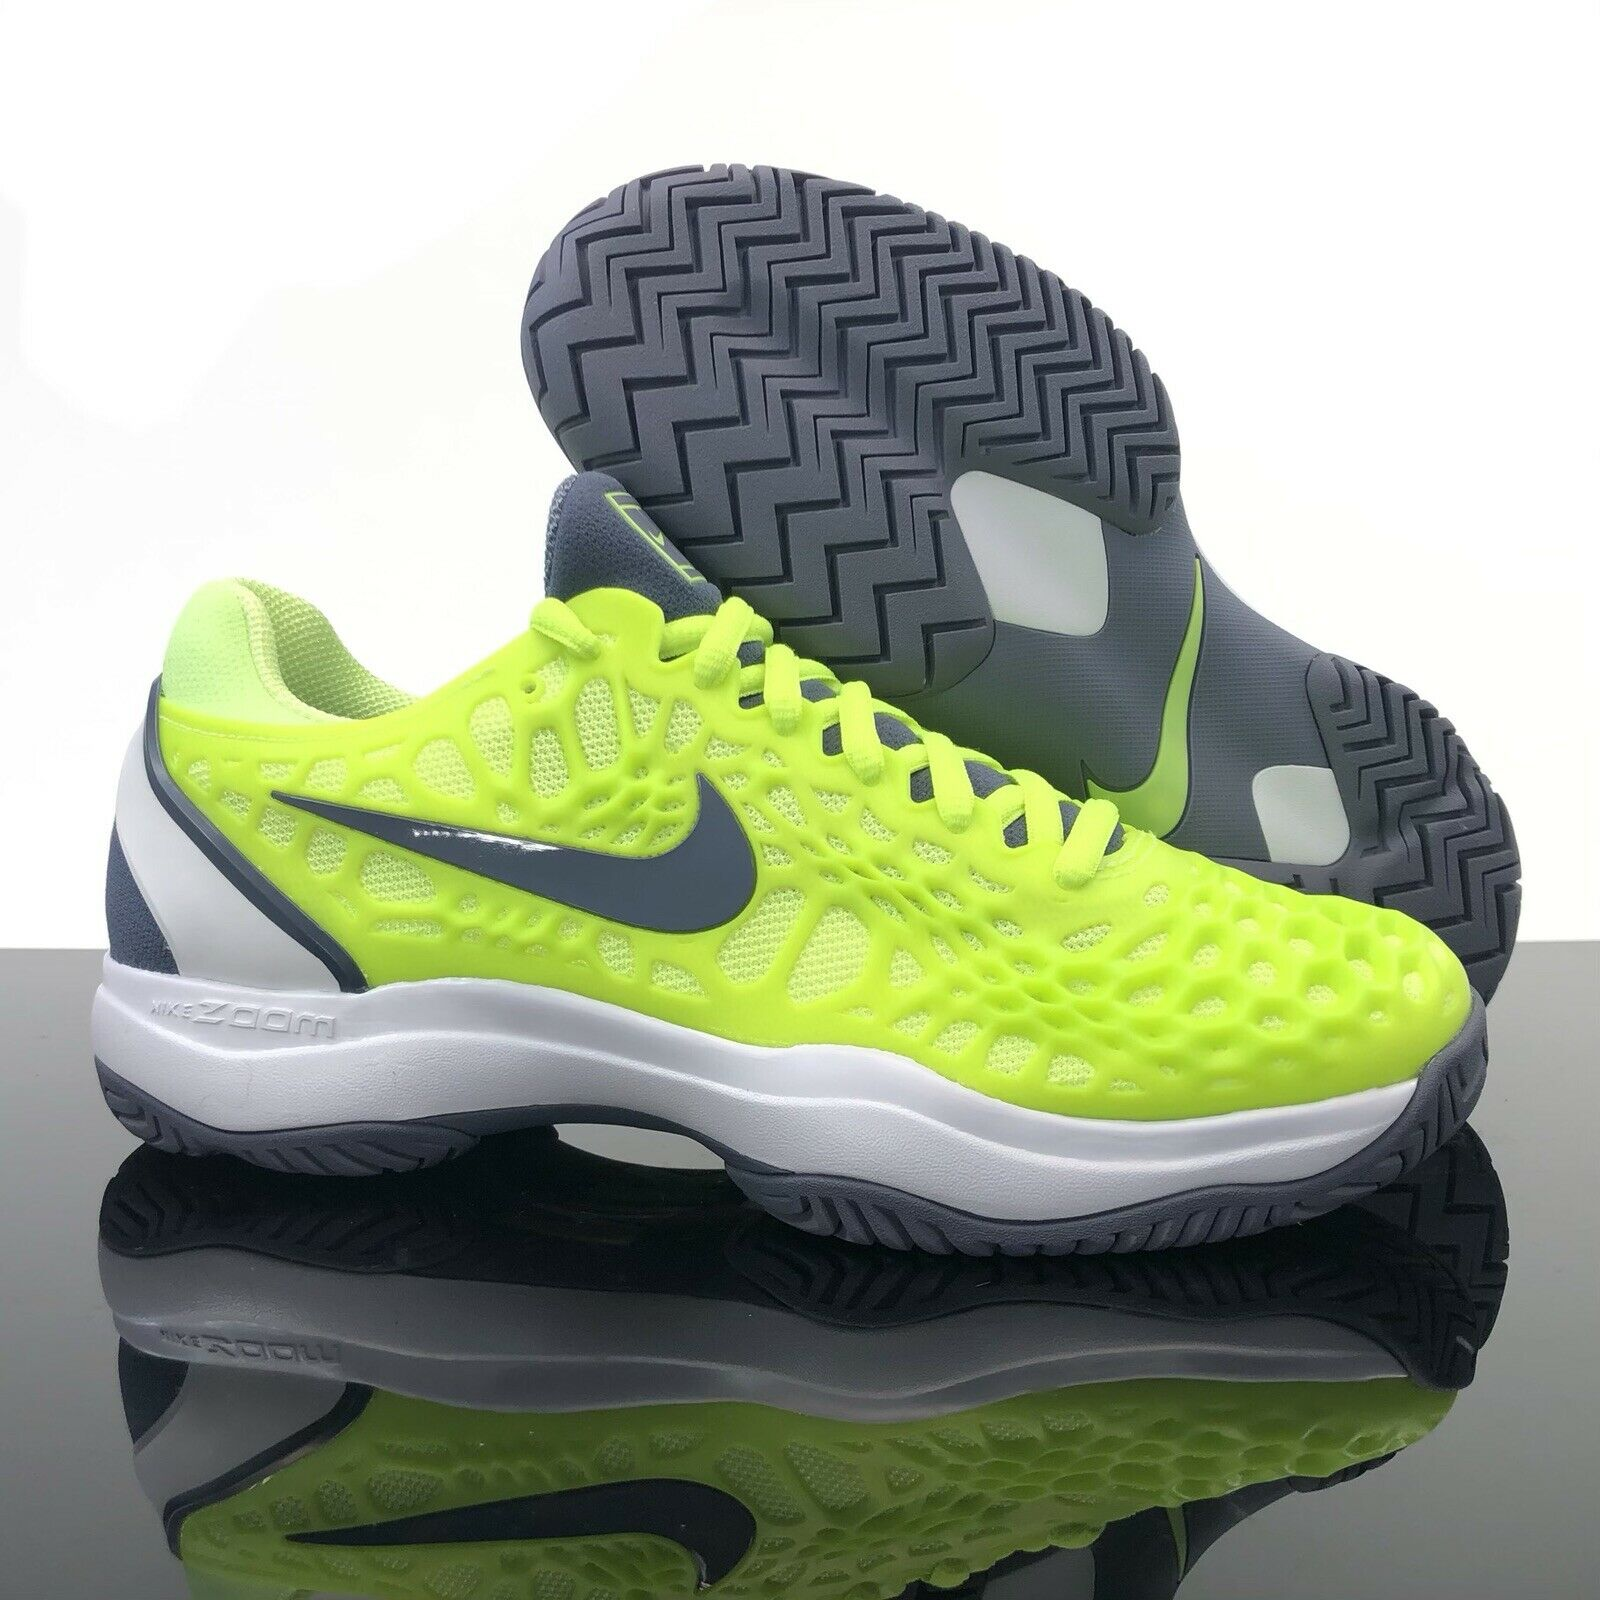 Nike Air Zoom Cage 3 Hc Rafael Nadal Tennis Shoes 918193 800 Men S Size 9 For Sale Online Ebay